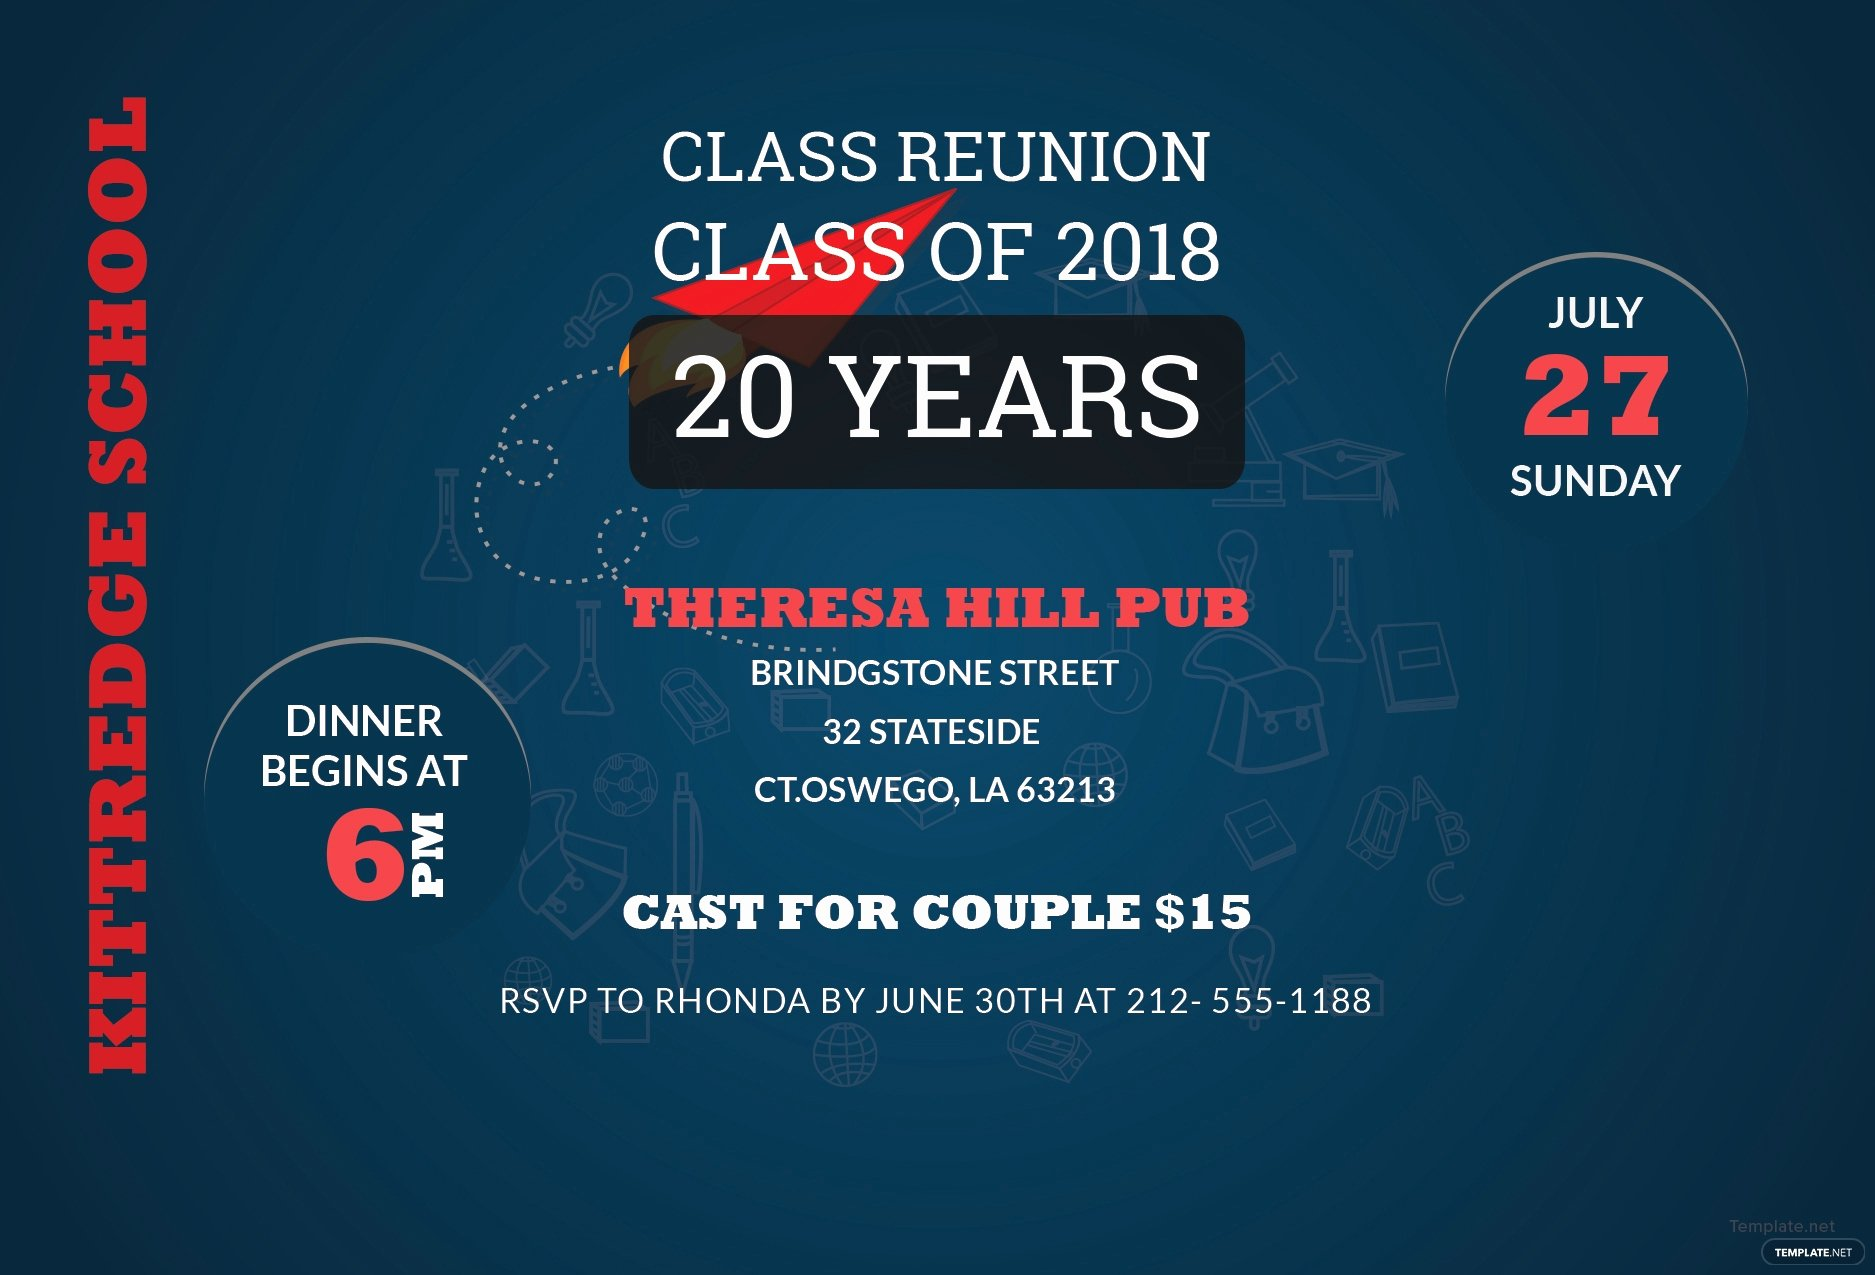 Class Reunion Invitation Template Free New Free Class Reunion Invitation Template In Adobe Shop